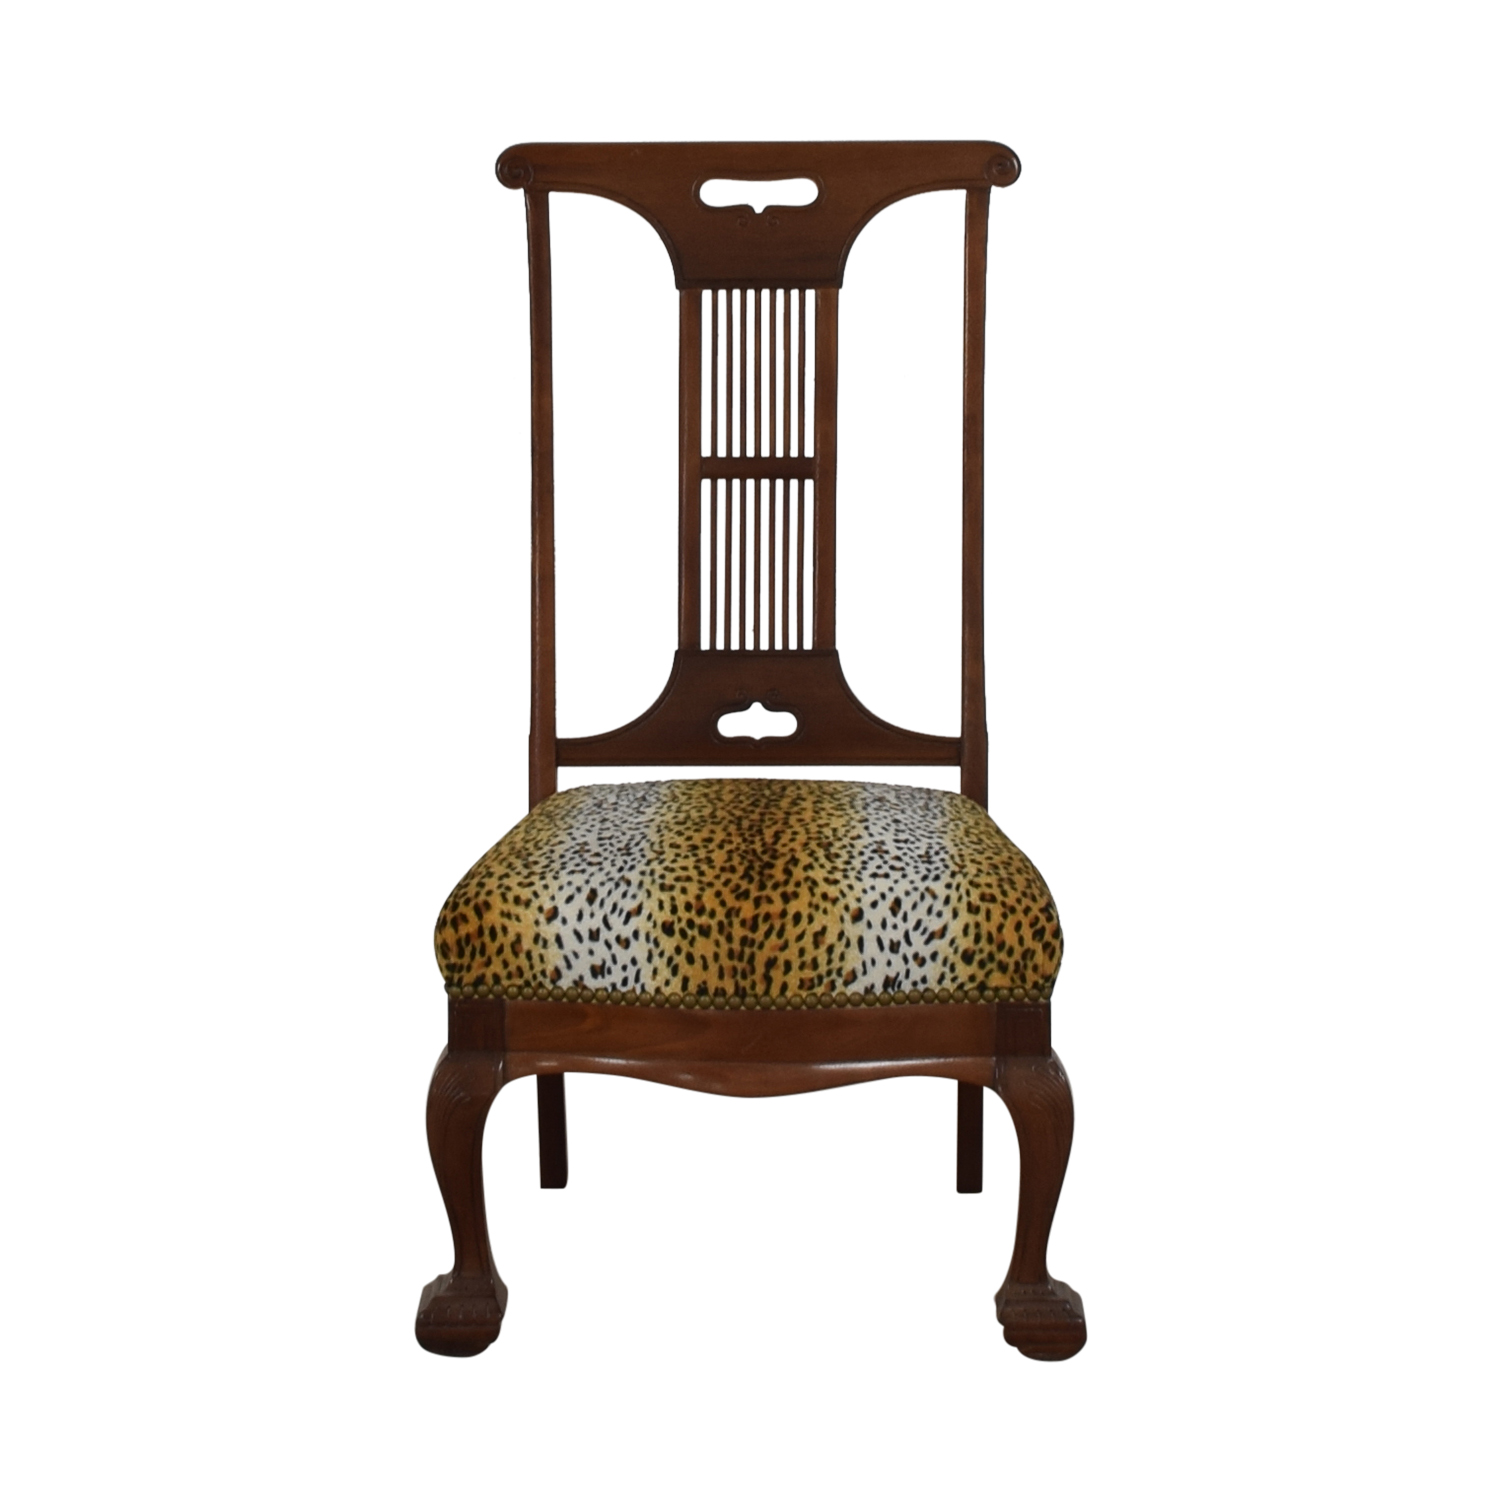 Furniture Masters Furniture Masters Leopard Upholstered Wood Dining Chair nj